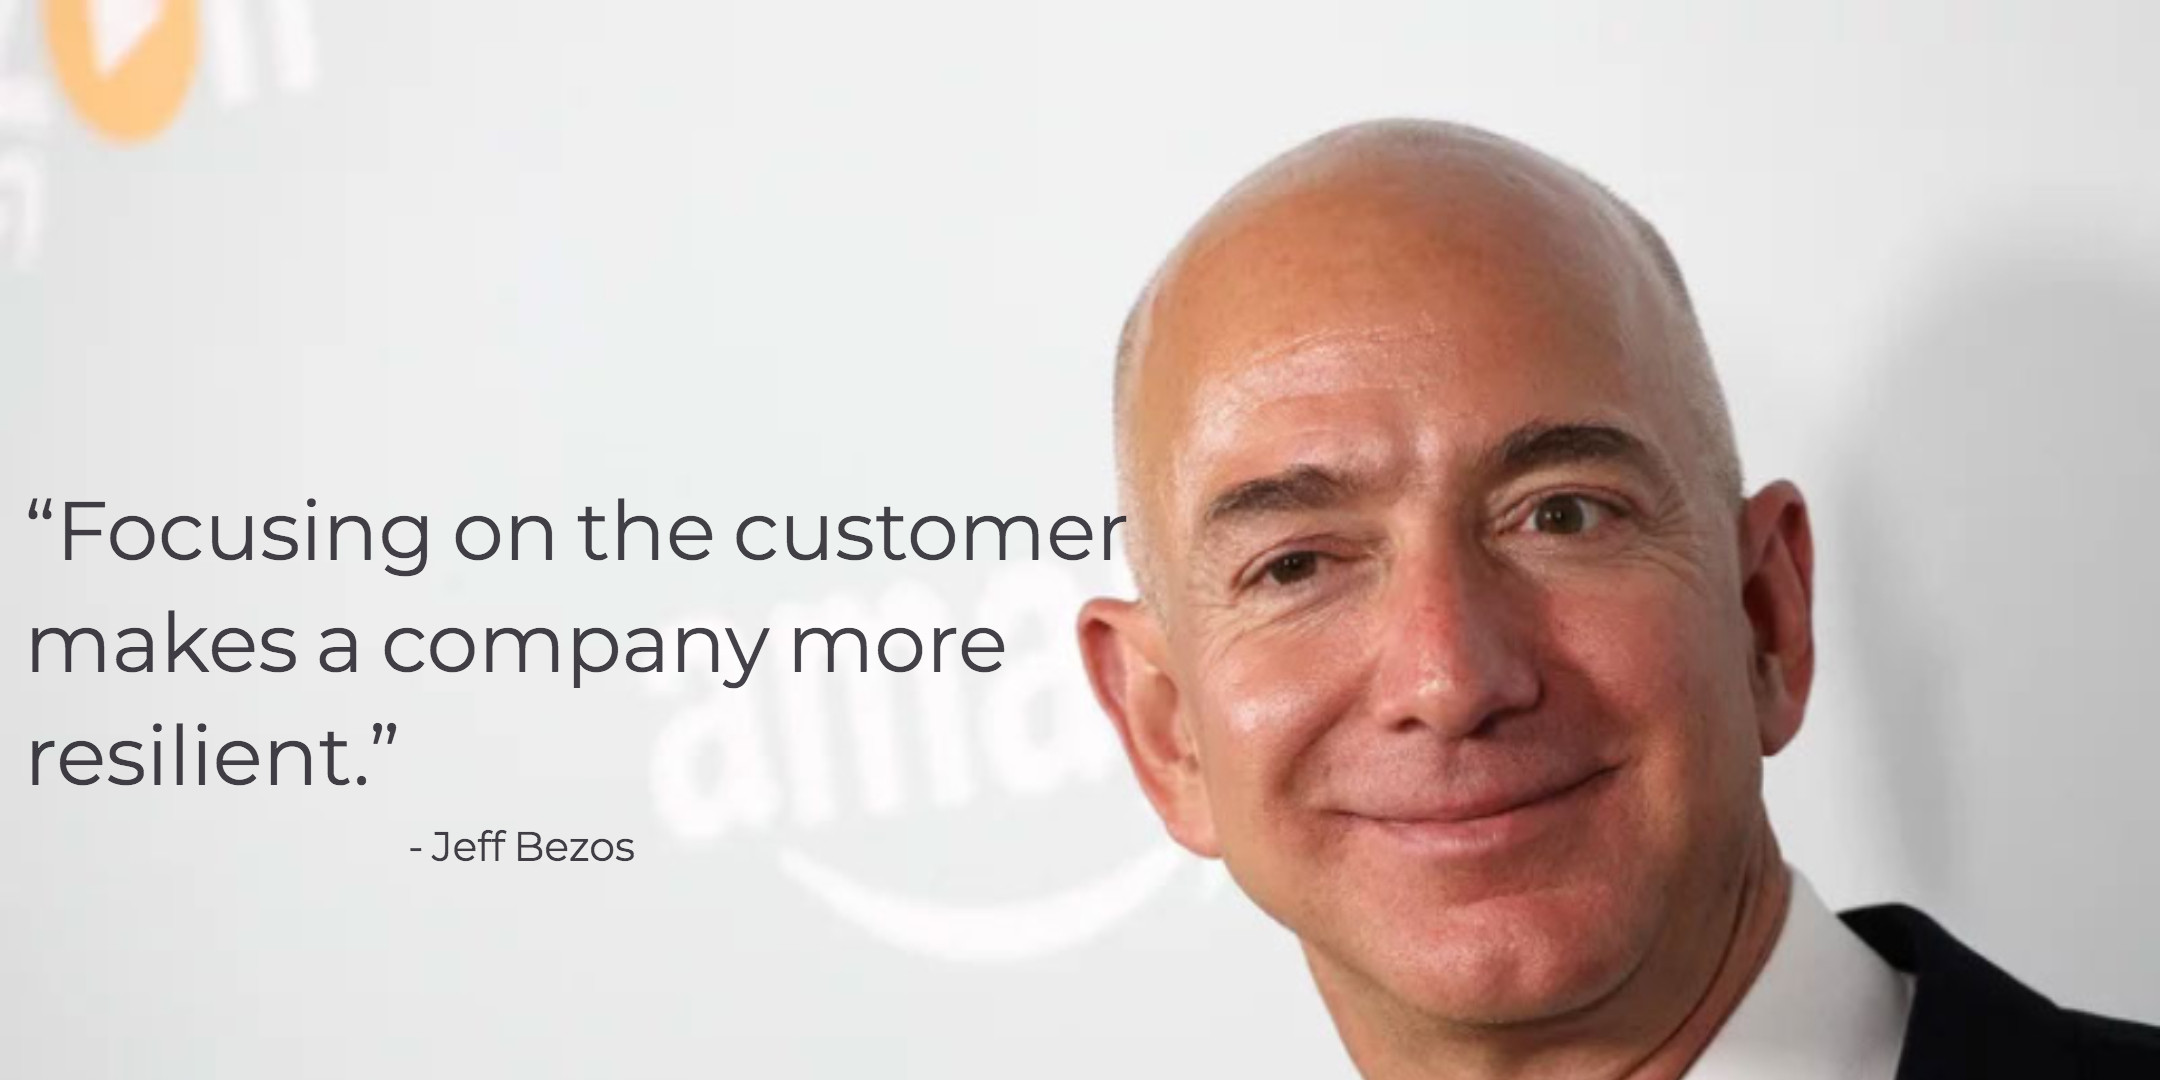 jeff bezos customerexperience quote